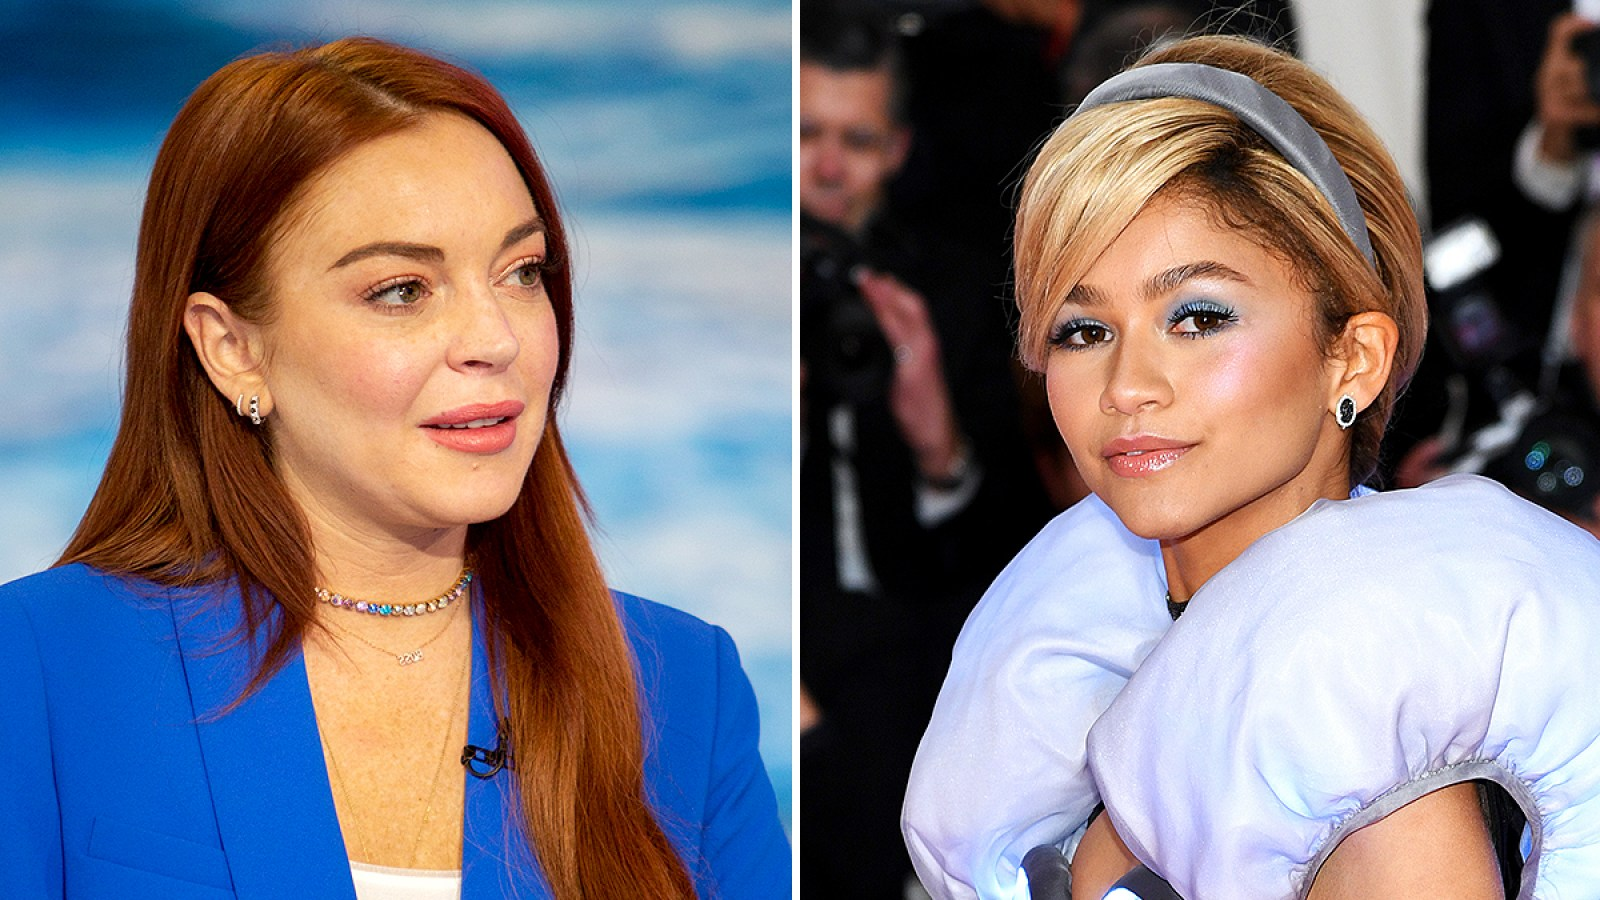 be147498e Lindsay Lohan Disses Zendaya's Cinderella Met Gala 2019 Look: She Can't Be  'More Chic' Than Claire Danes